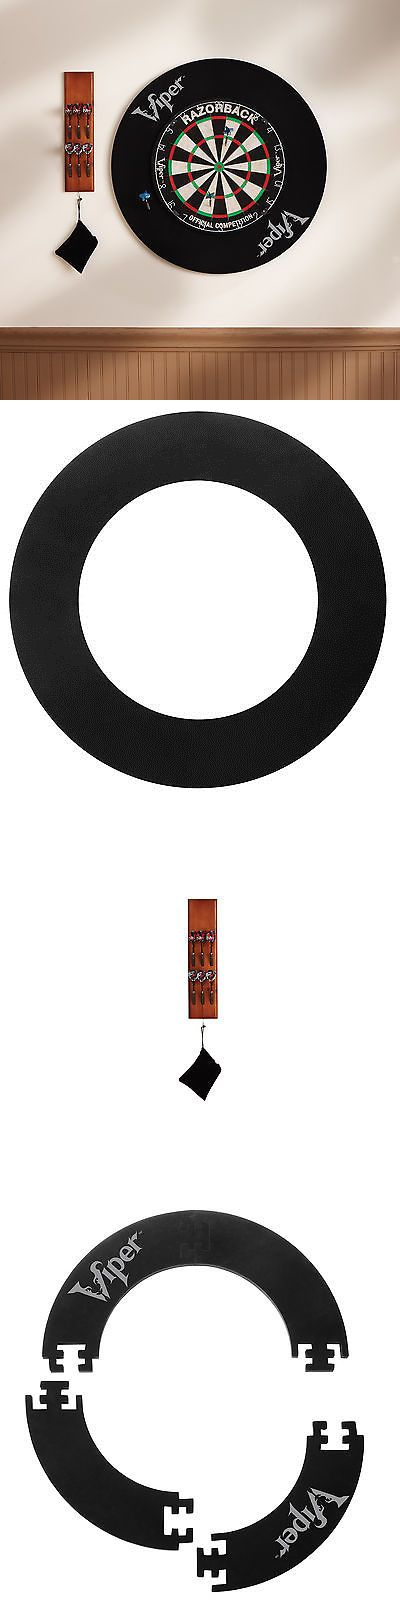 Dart Boards 72576: Gld Products Viper Dartboard Surround Defender -> BUY IT NOW ONLY: $34.99 on eBay!